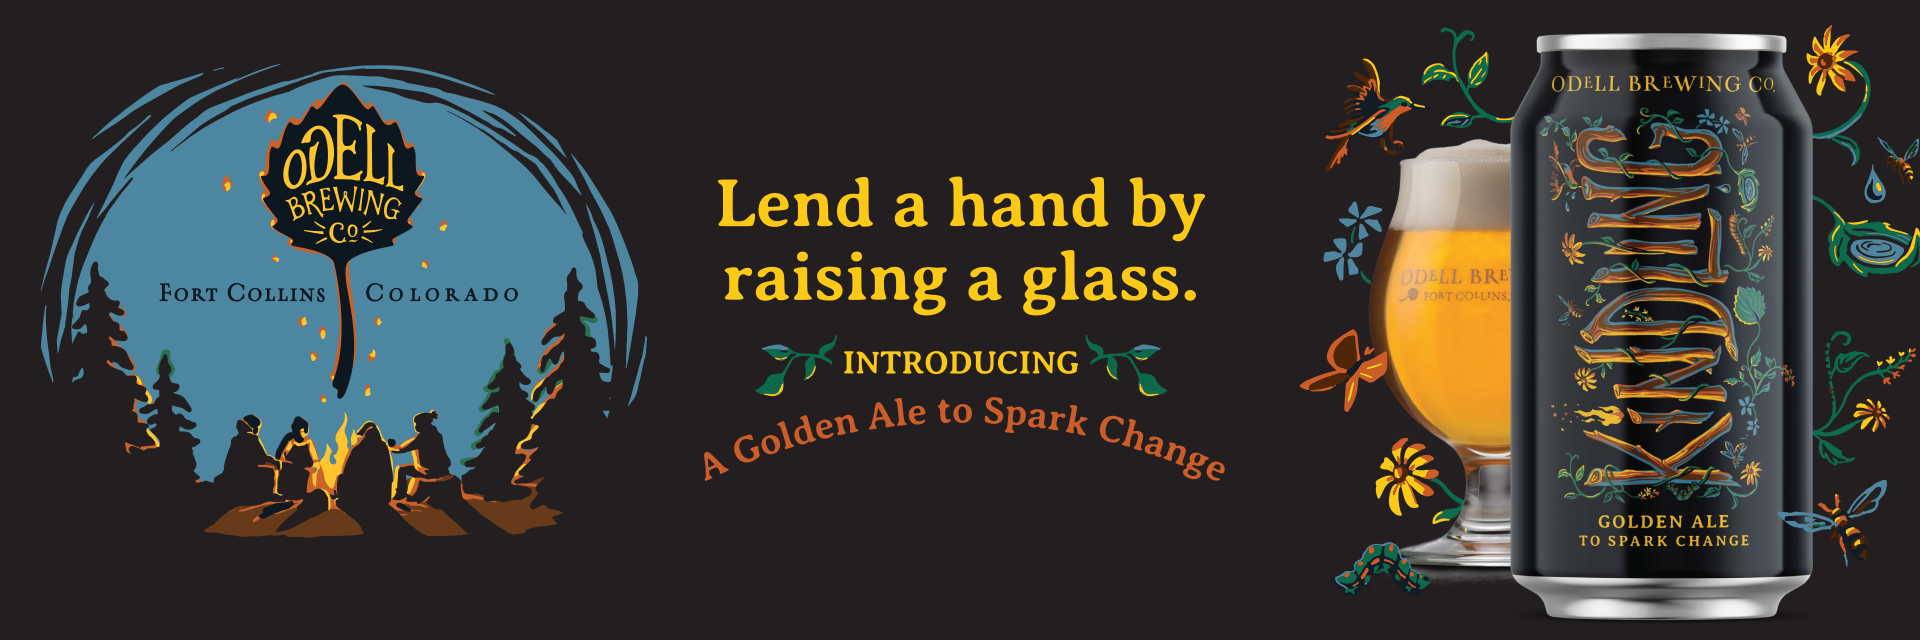 Odell Brewing Launches Kindling, Beer And Charity Program